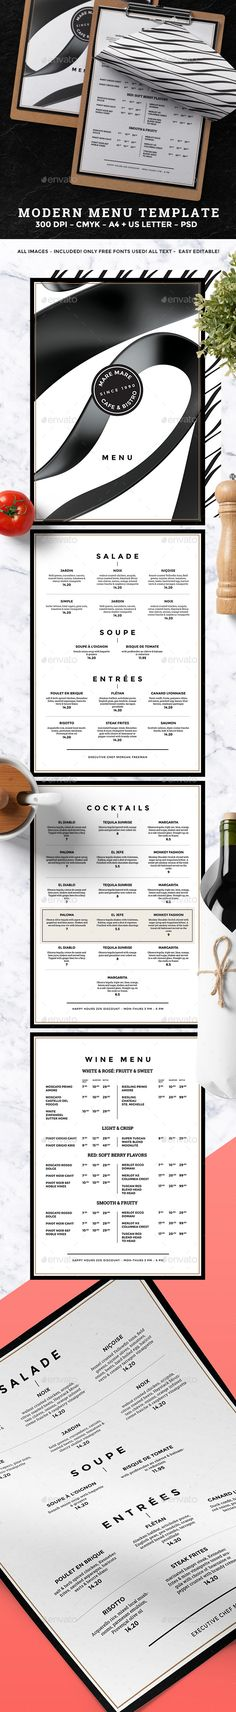 Minimal Menu — Photoshop PSD #elegant #print template • Available here → https://graphicriver.net/item/food-menu/18686284?ref=pxcr